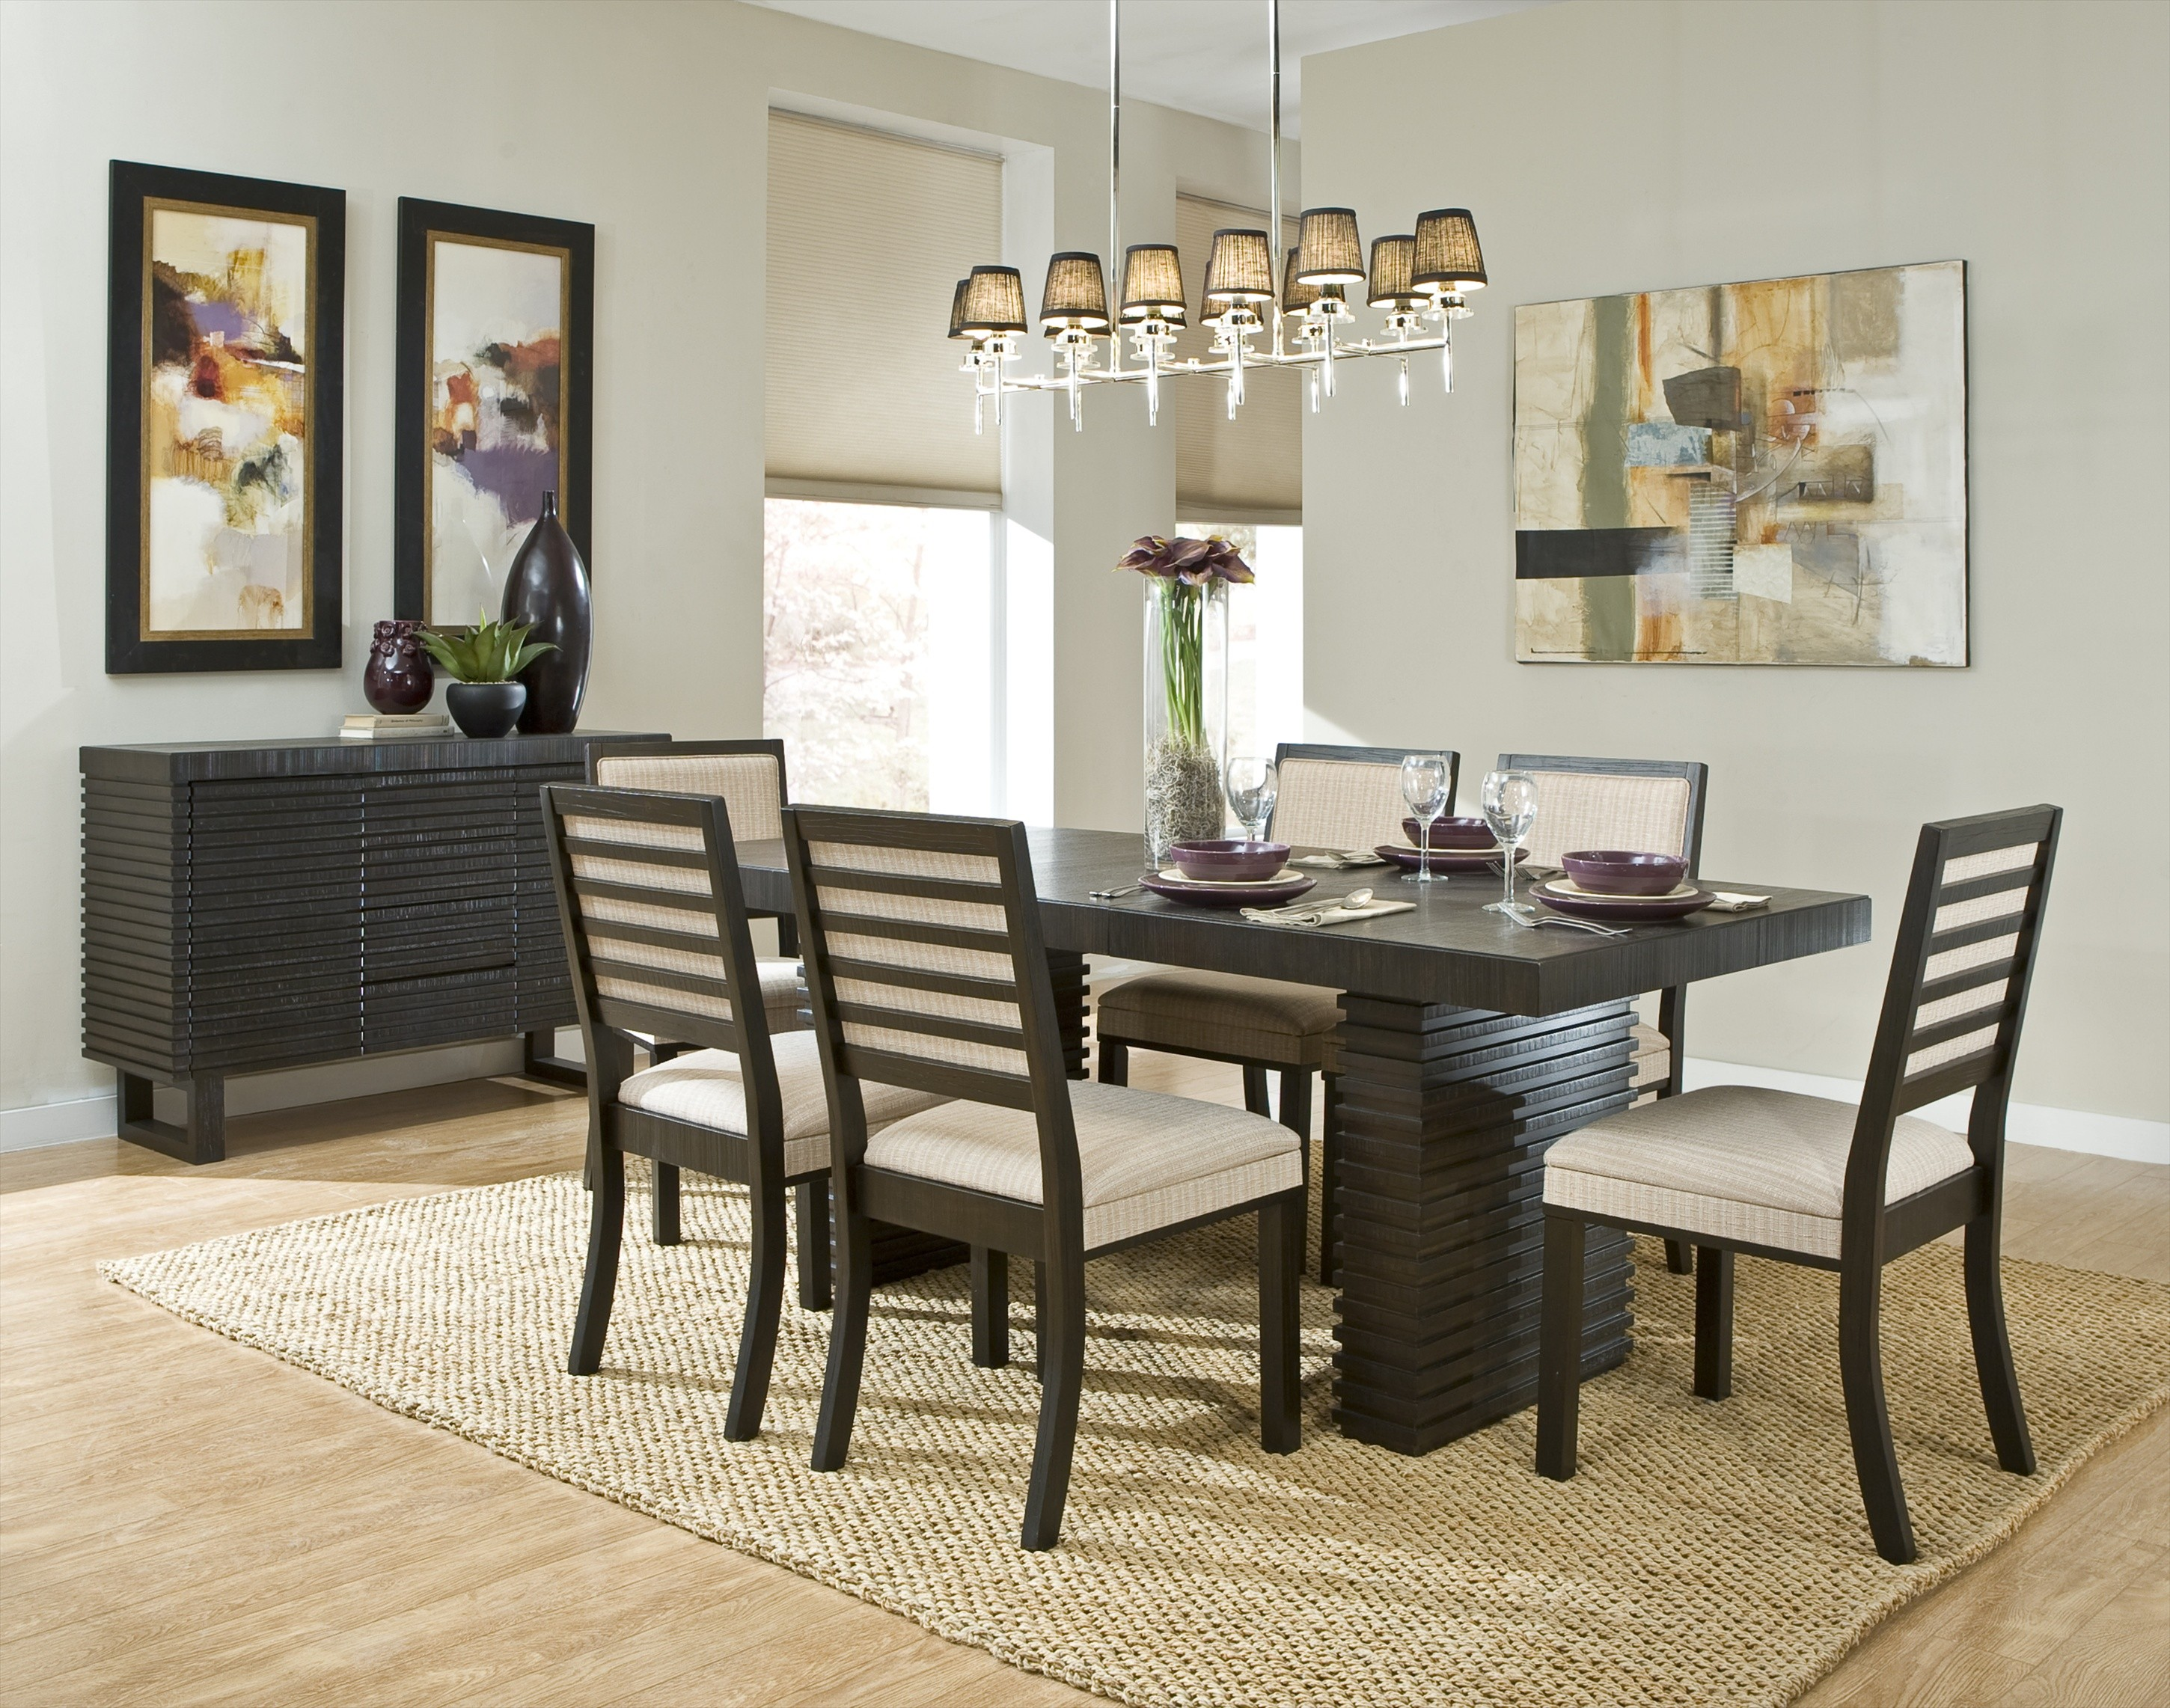 formal dining room ideas - Home Design And Decor